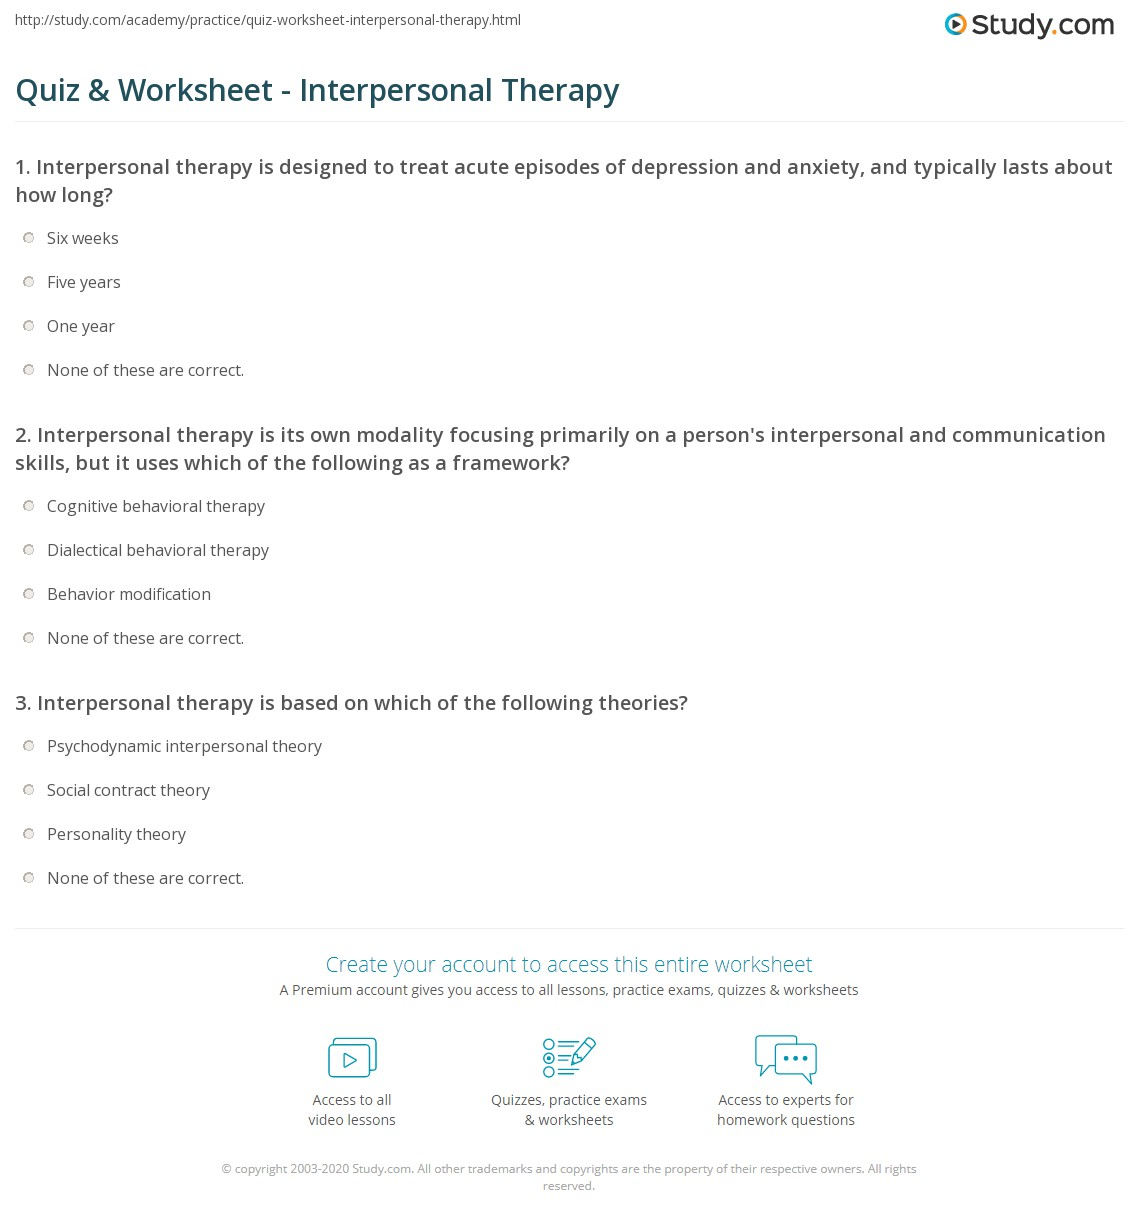 Quiz Worksheet Interpersonal Therapy – Cognitive Behavioral Therapy Worksheet